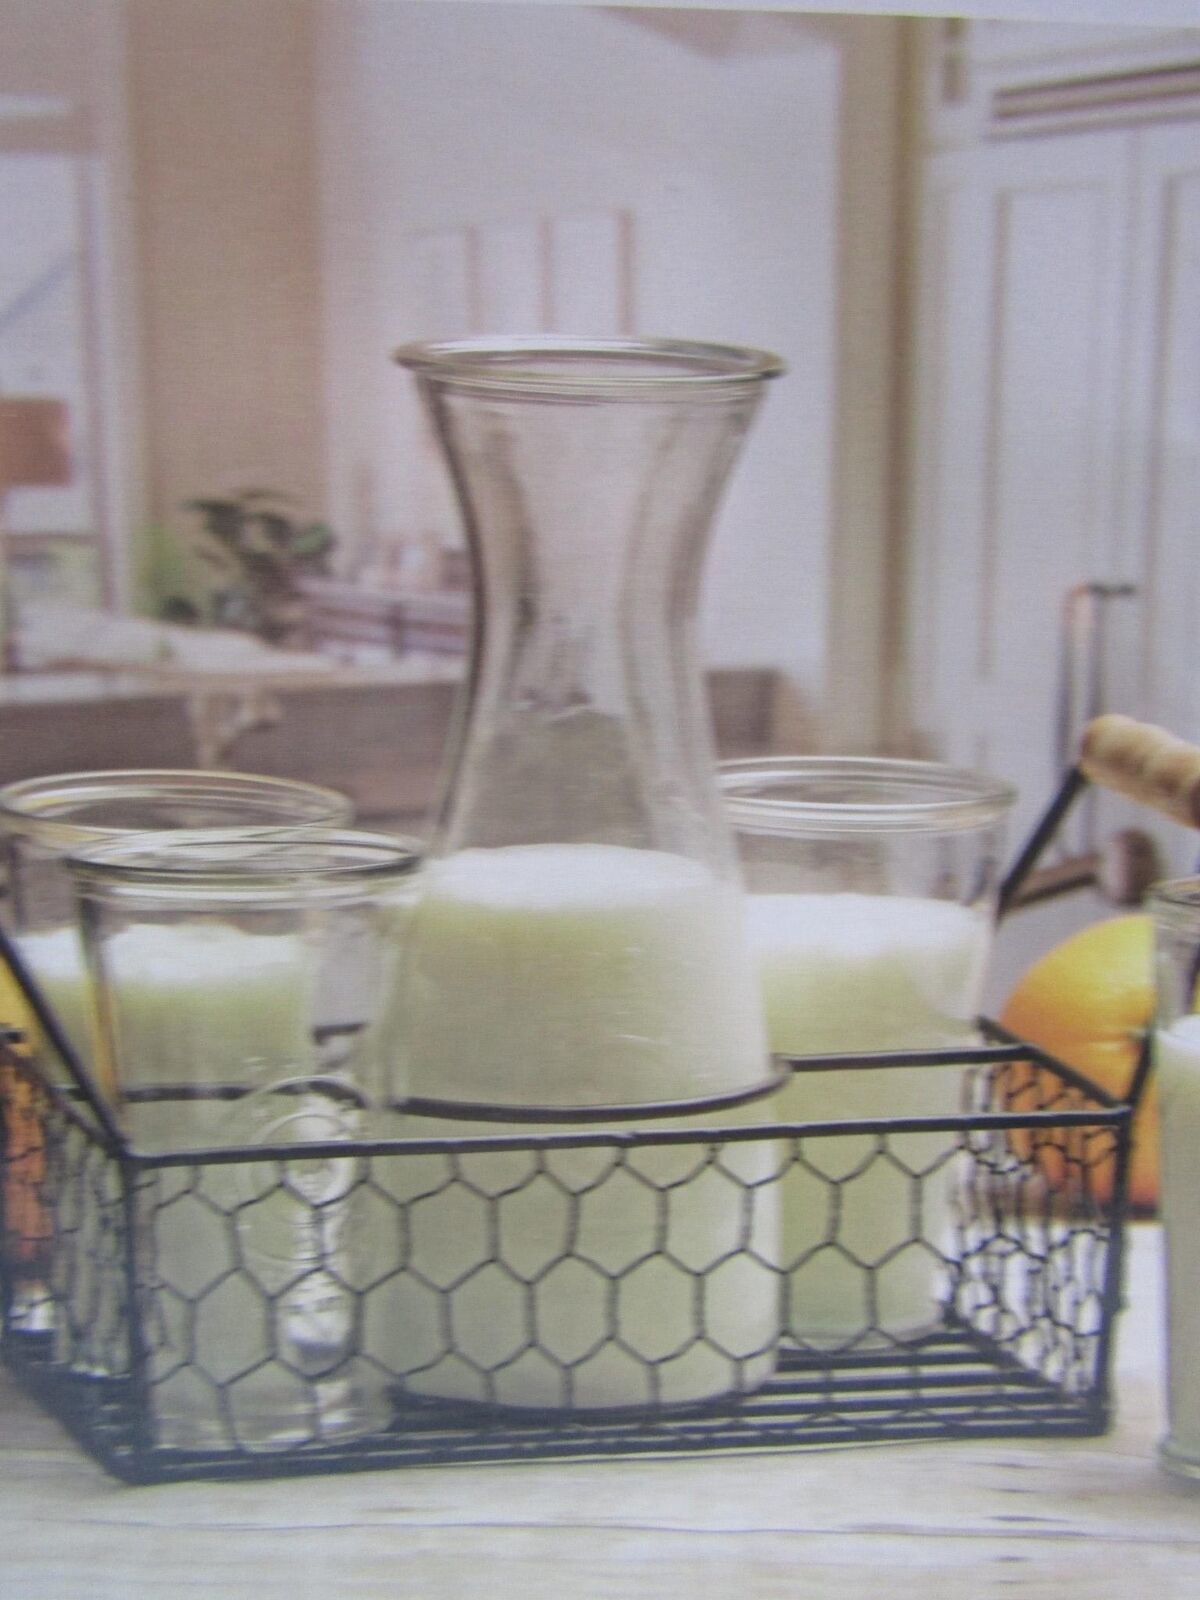 Circleware Ranch Collection Brunch Set Embossed Rooster Carafe Glasses Caddy